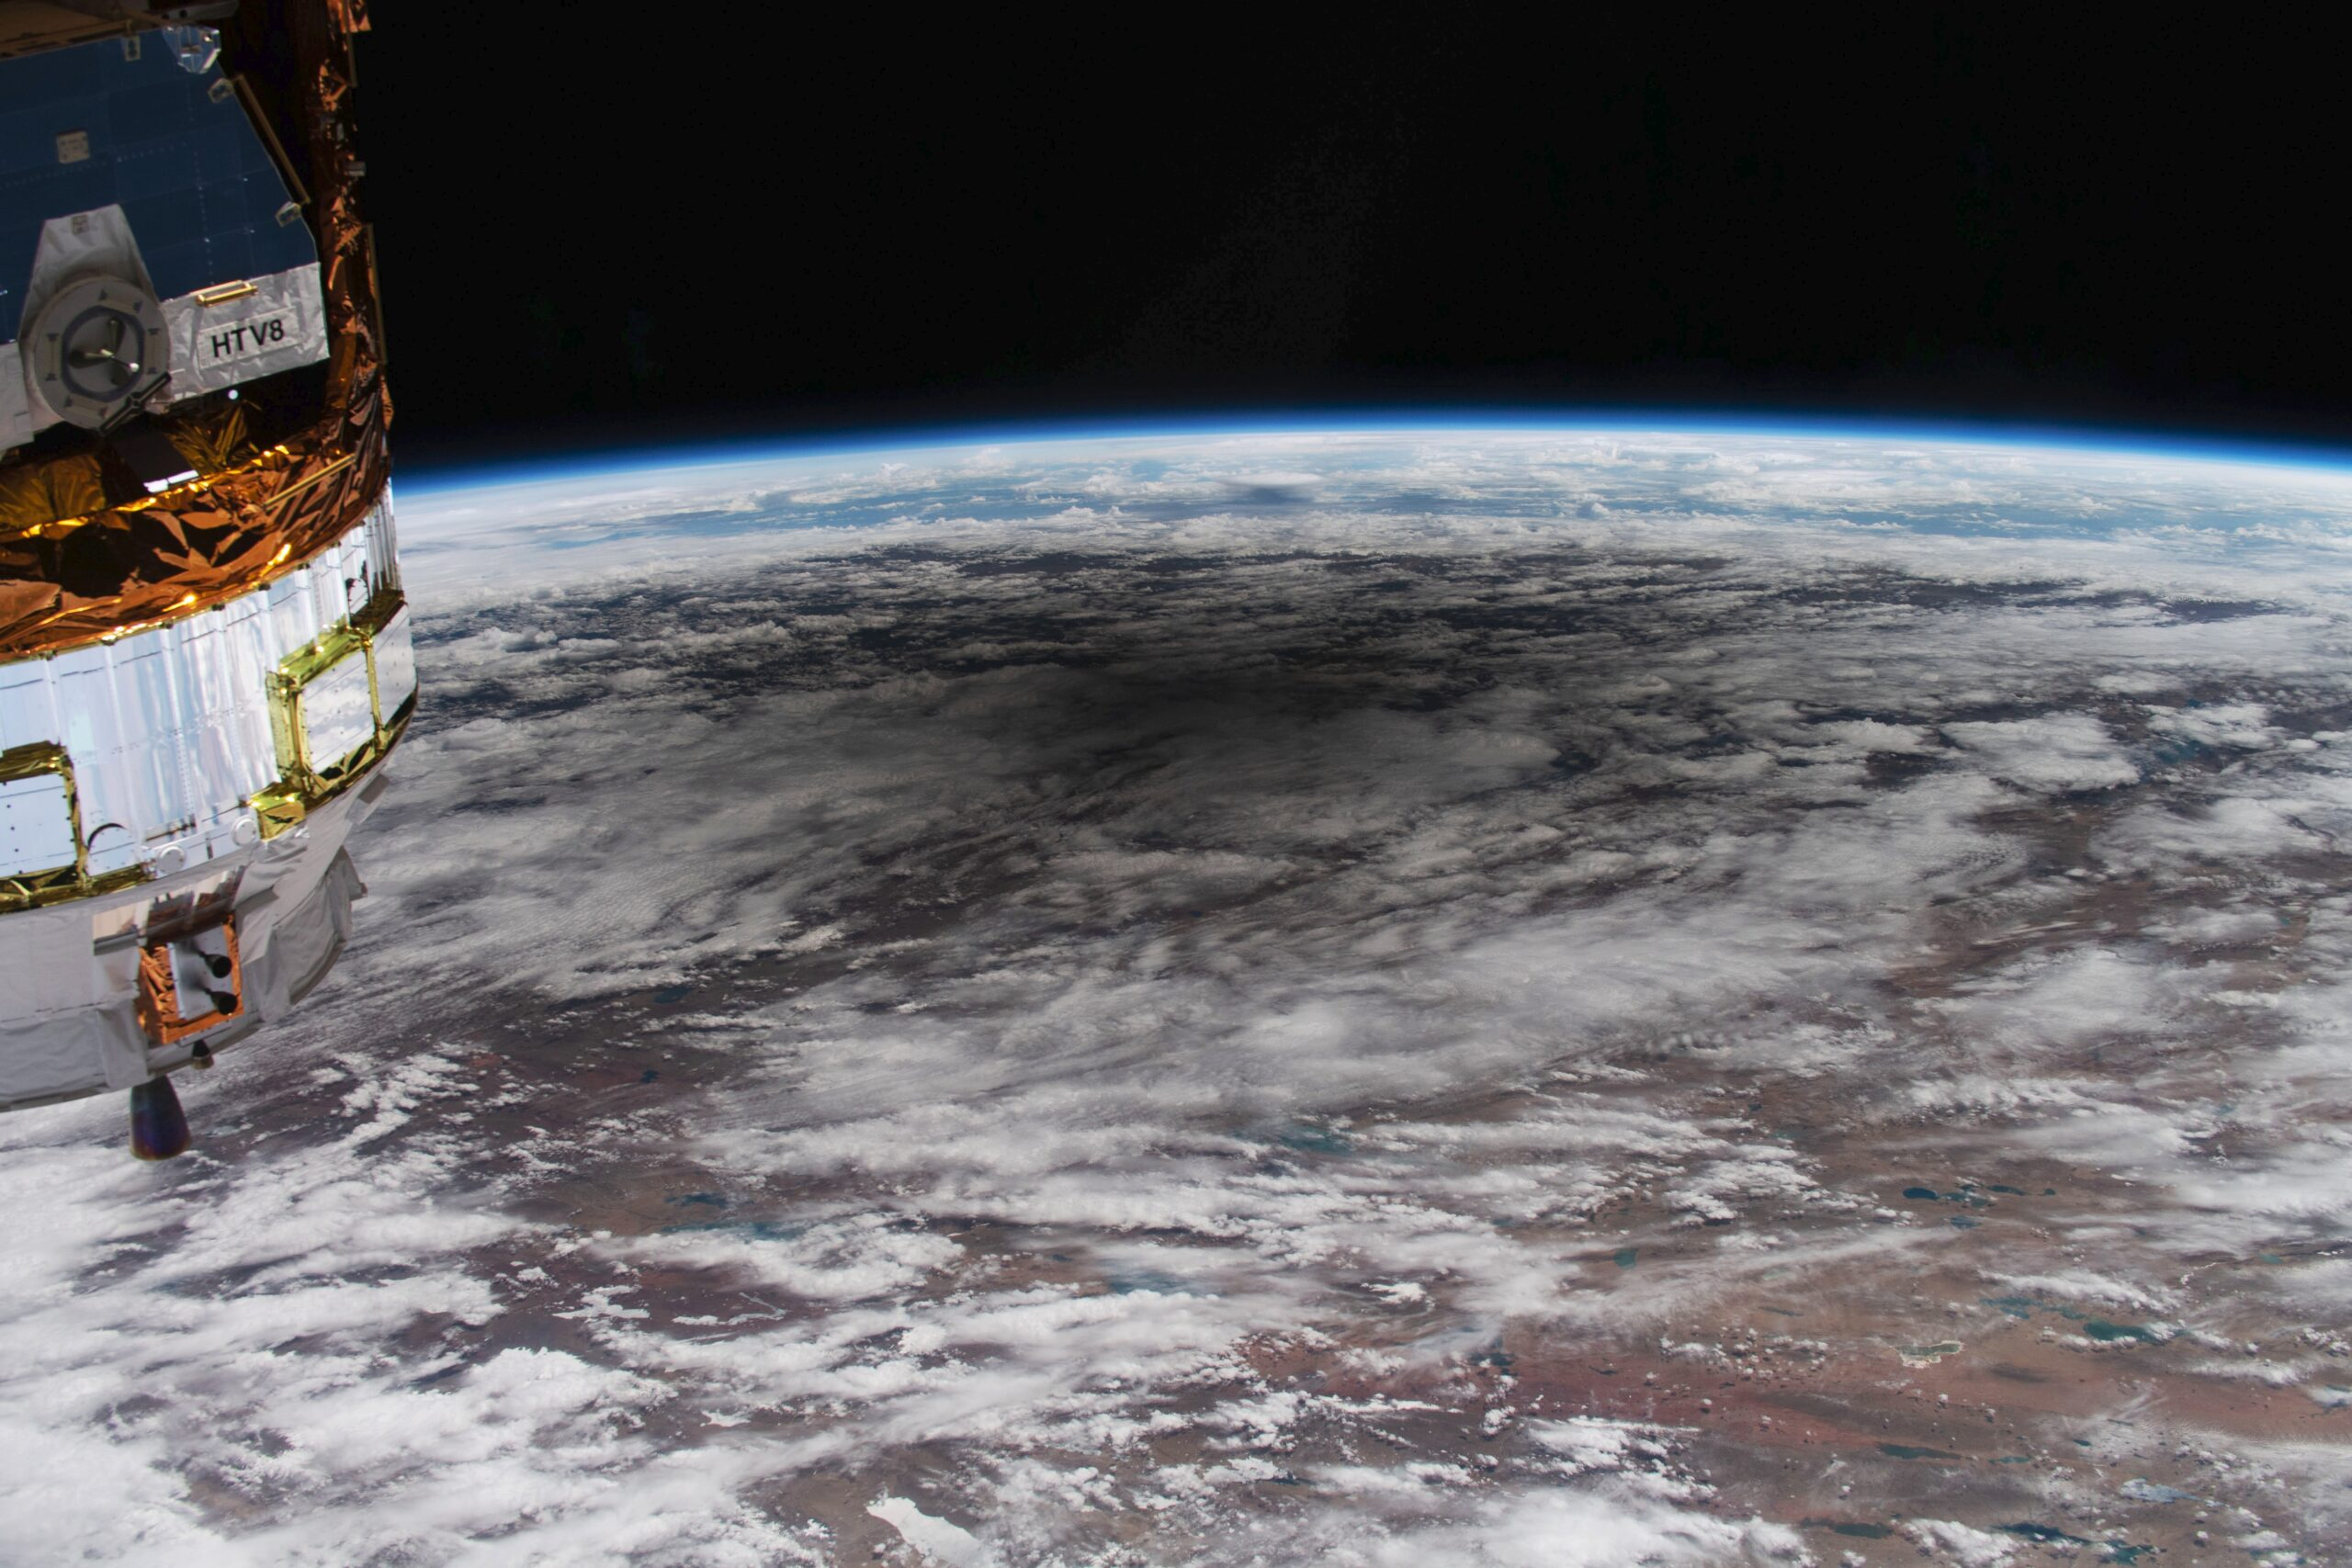 Eclipse passing over China